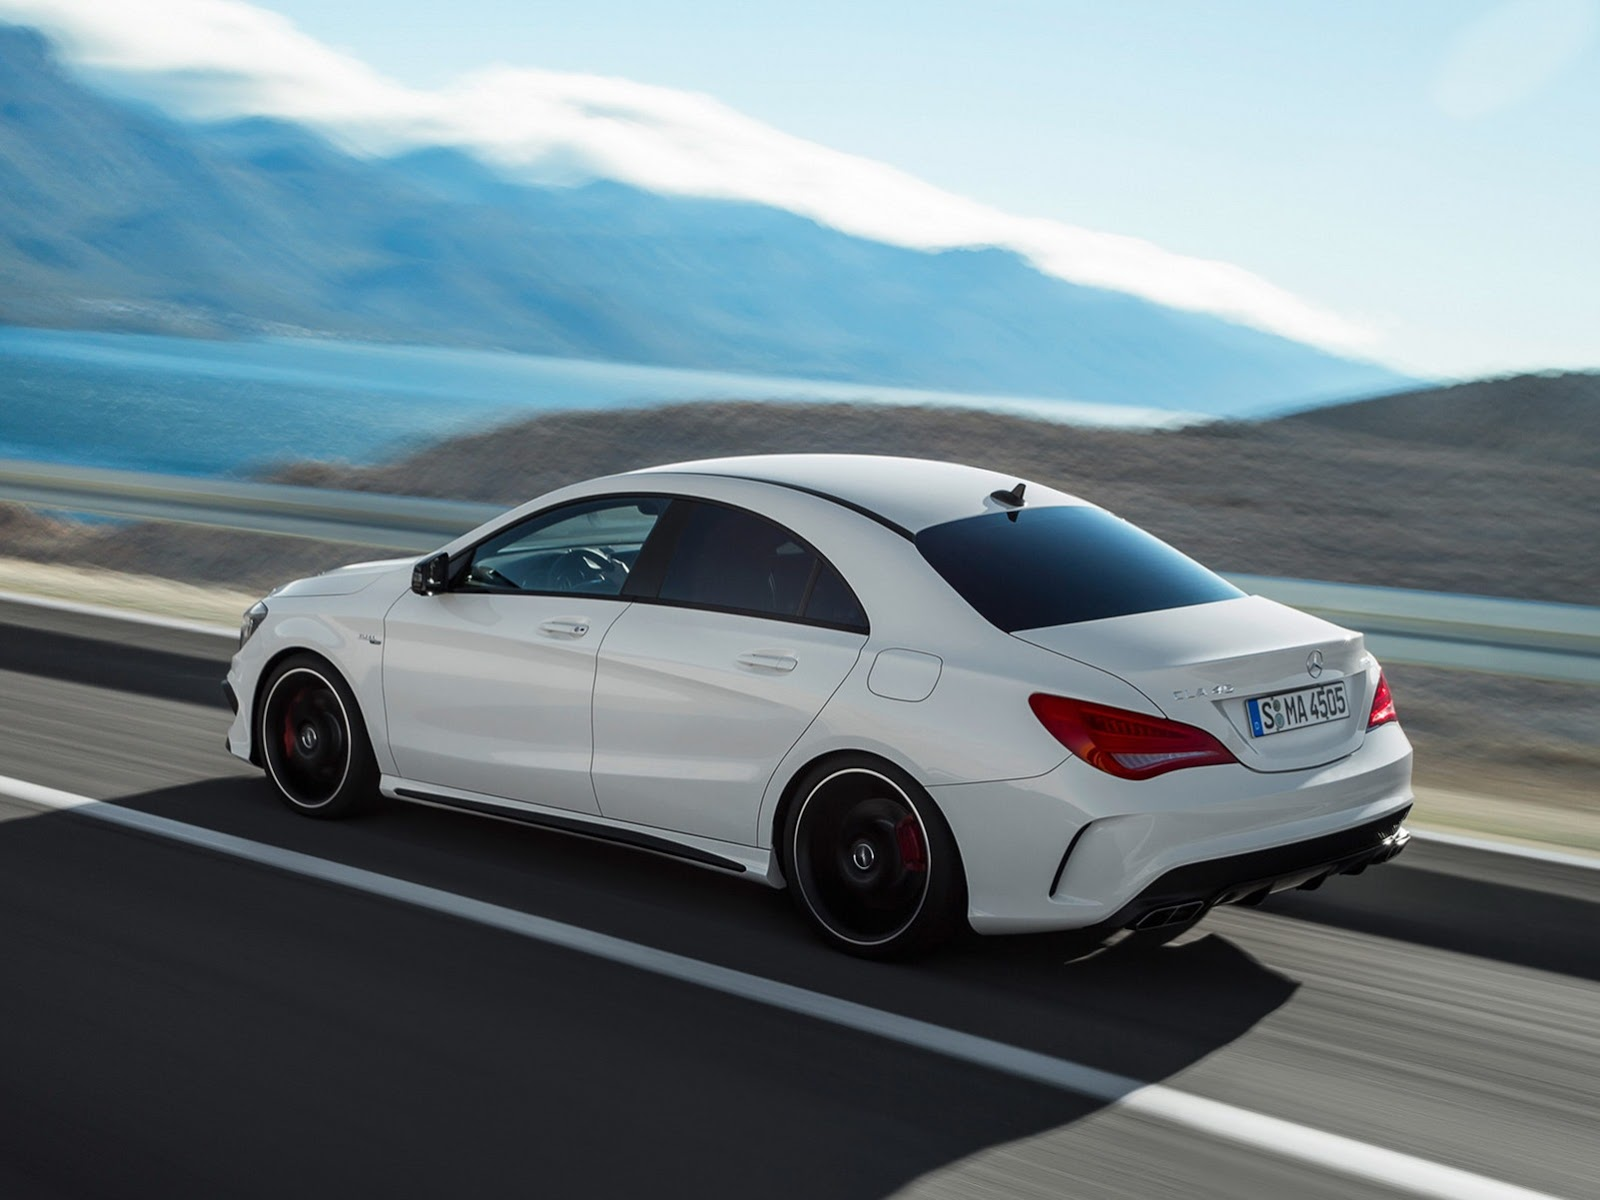 2014 Mercedes Cla 45 Amg First Photos Leaked Autoevolution